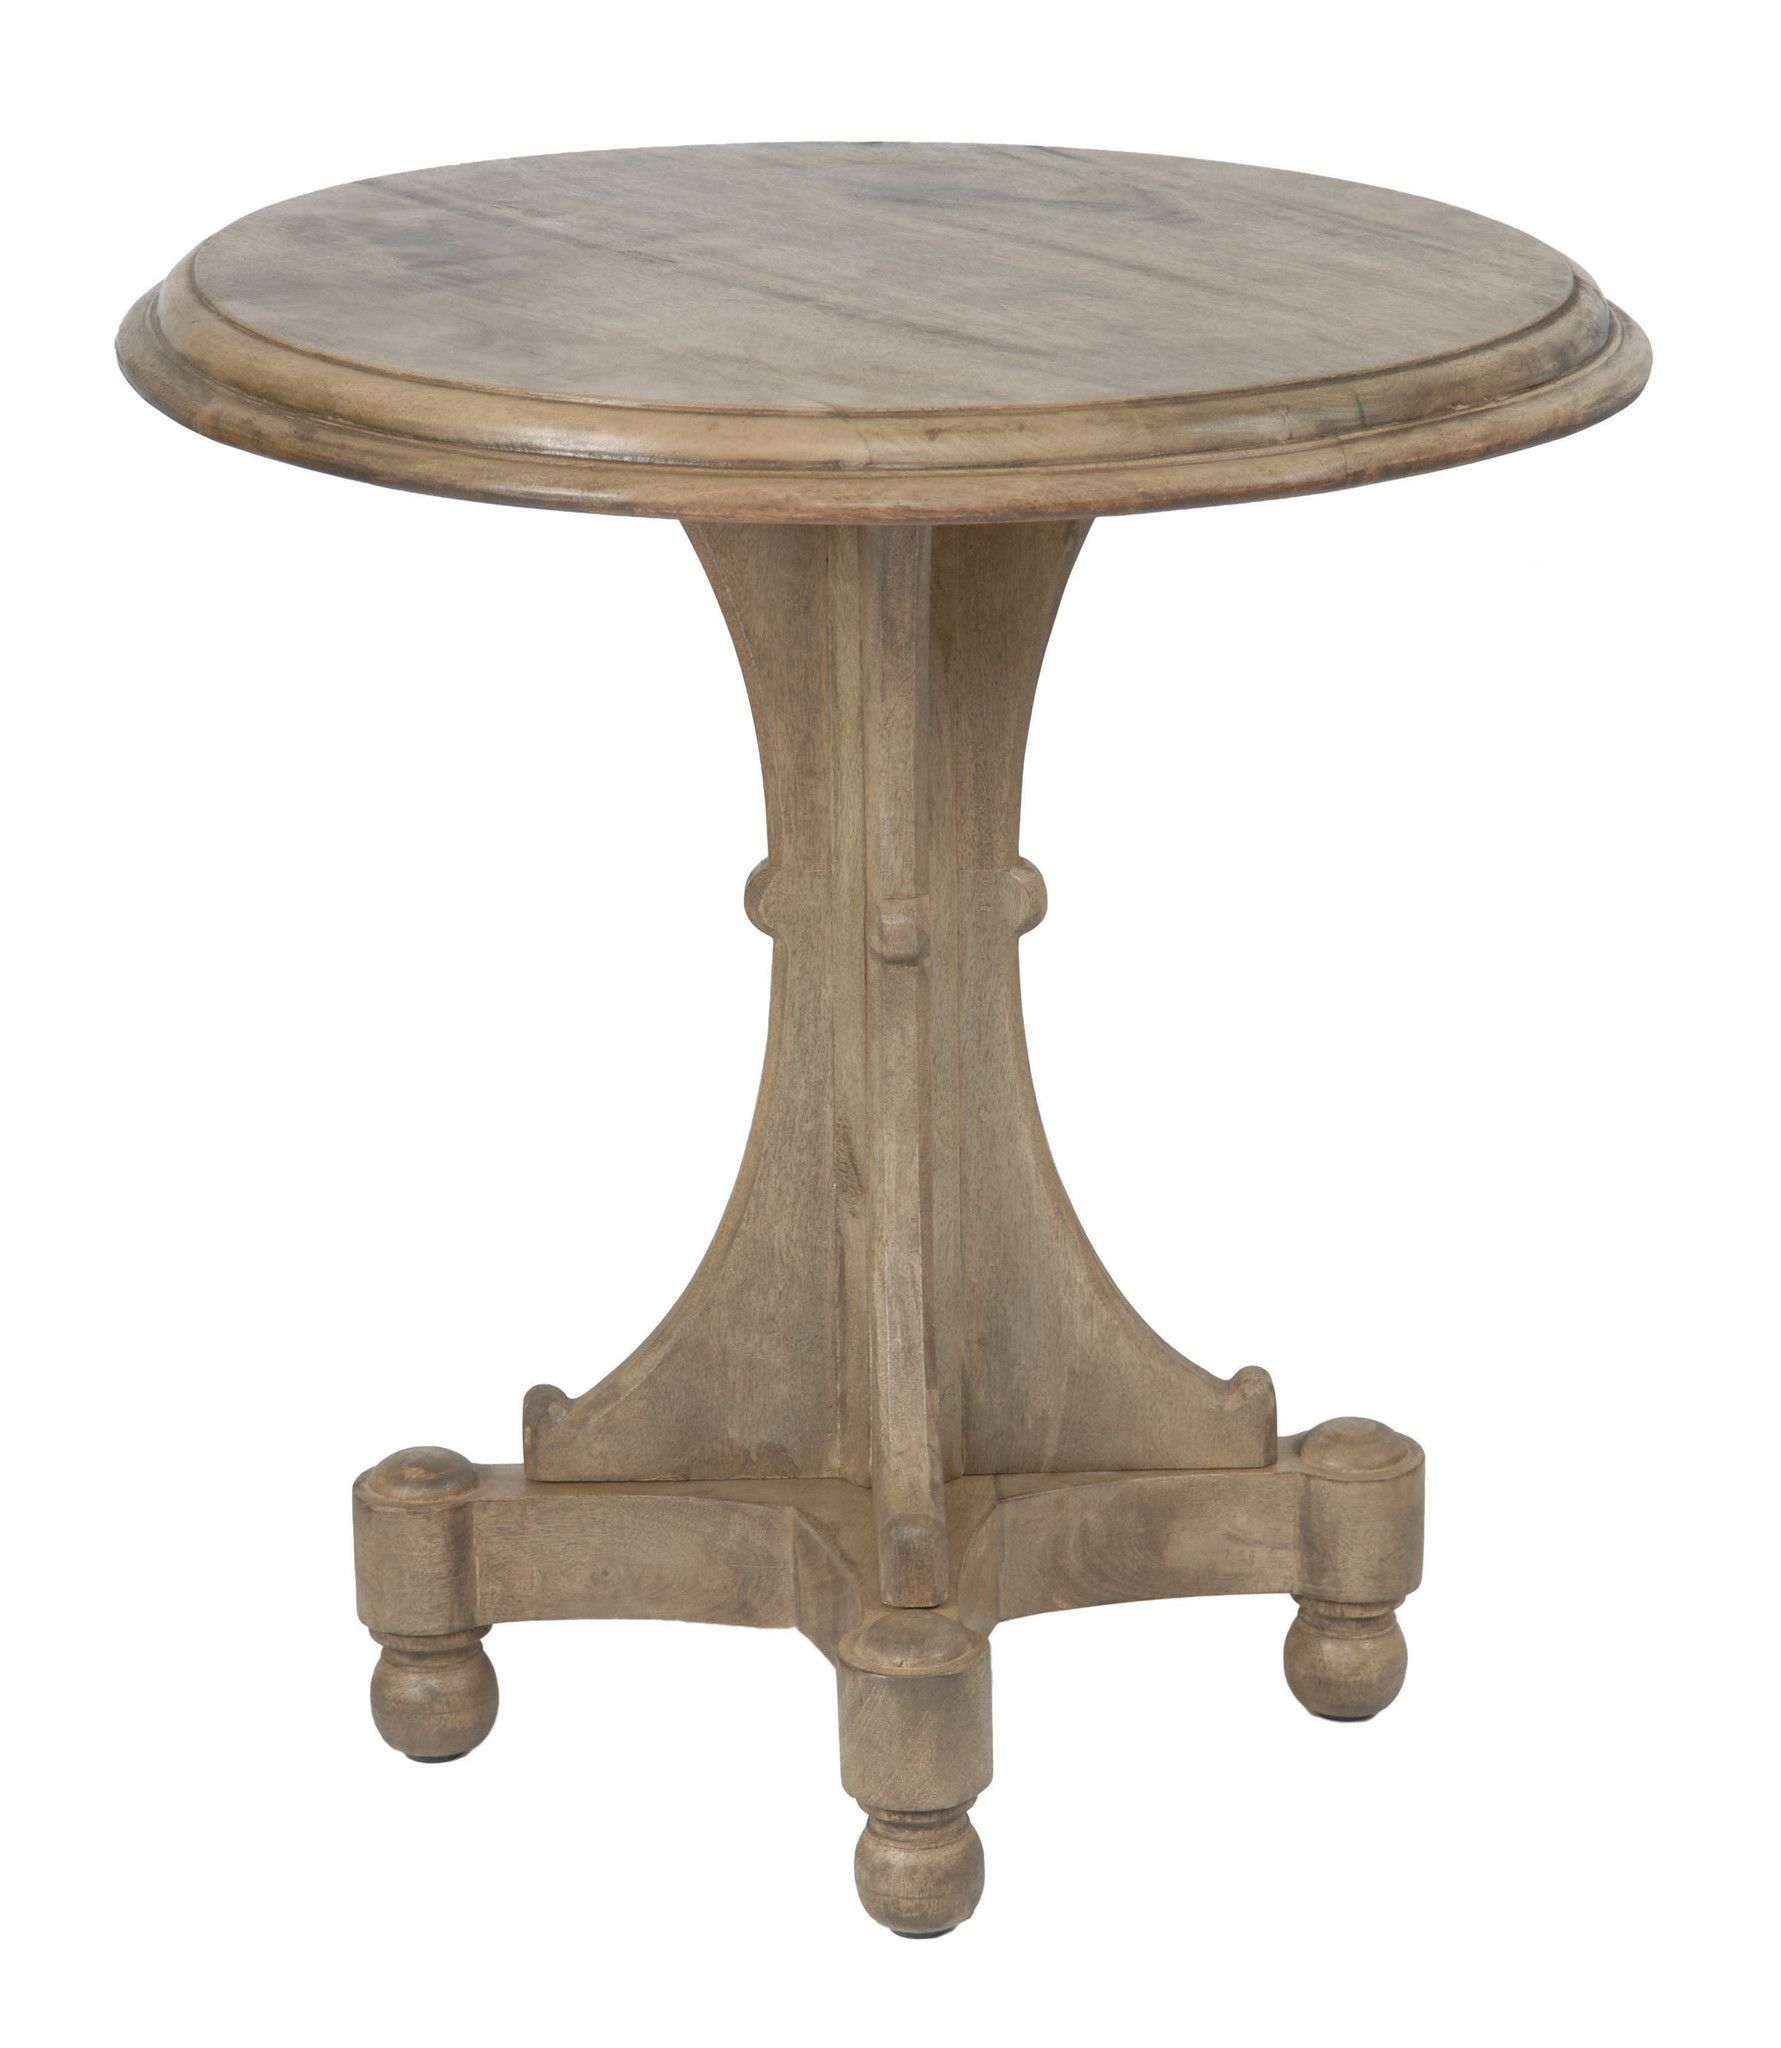 48 d dining table crank industrial old mango wood iron base bengal manor mango wood accent table geotapseo Image collections